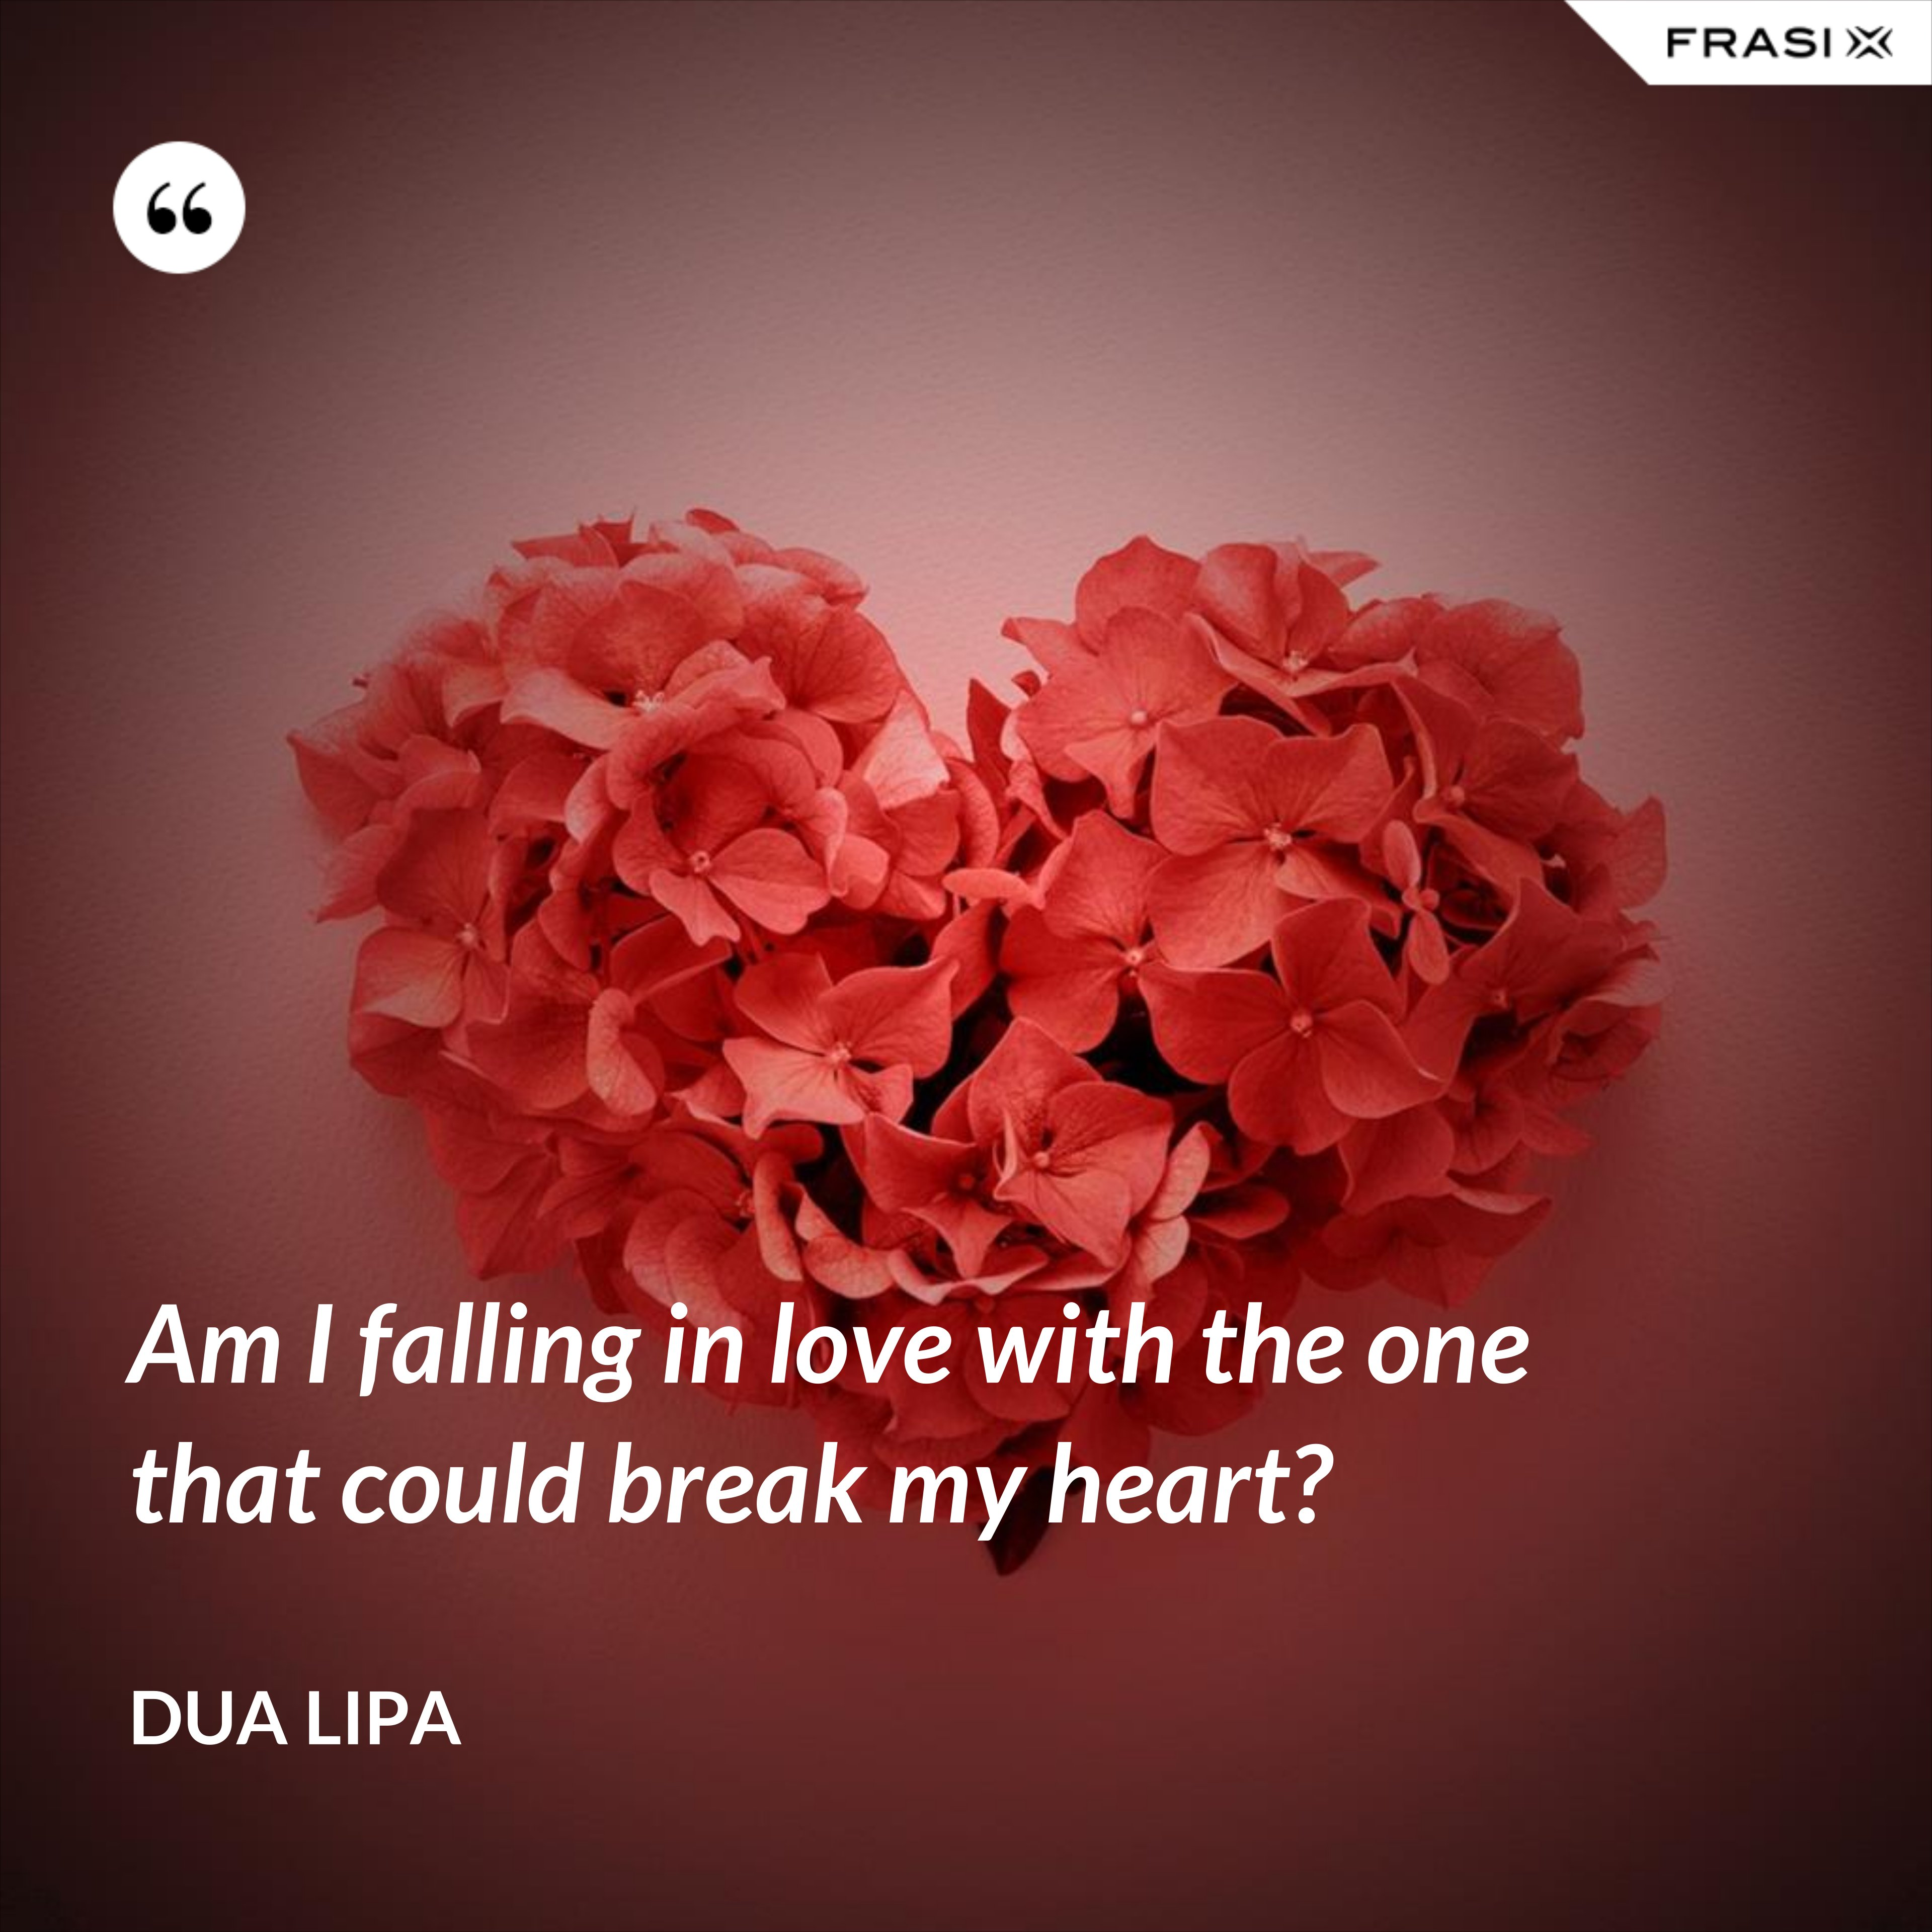 Am I falling in love with the one that could break my heart? - Dua Lipa